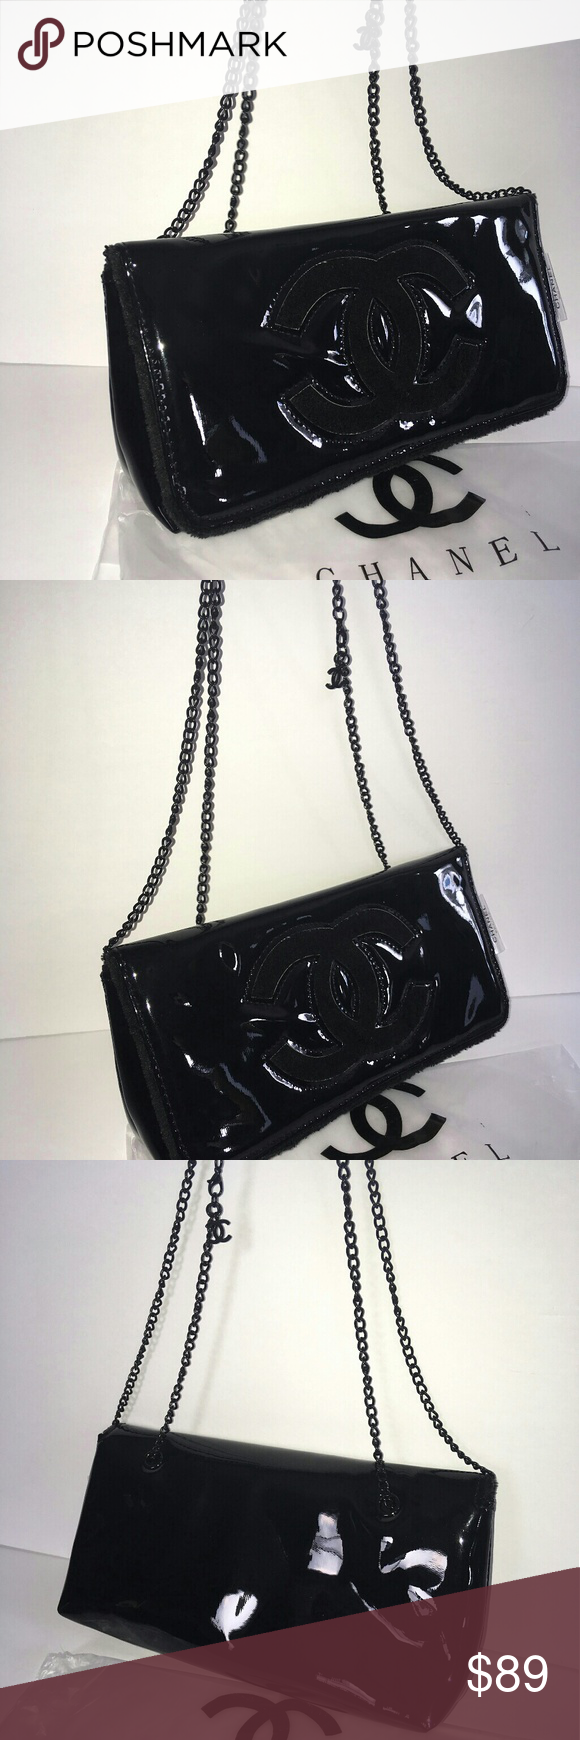 0c1684095f7b2e Beauty VIP Gift clutch /cross body bag Chanel Black beauty Cross body clutch  bag VIP